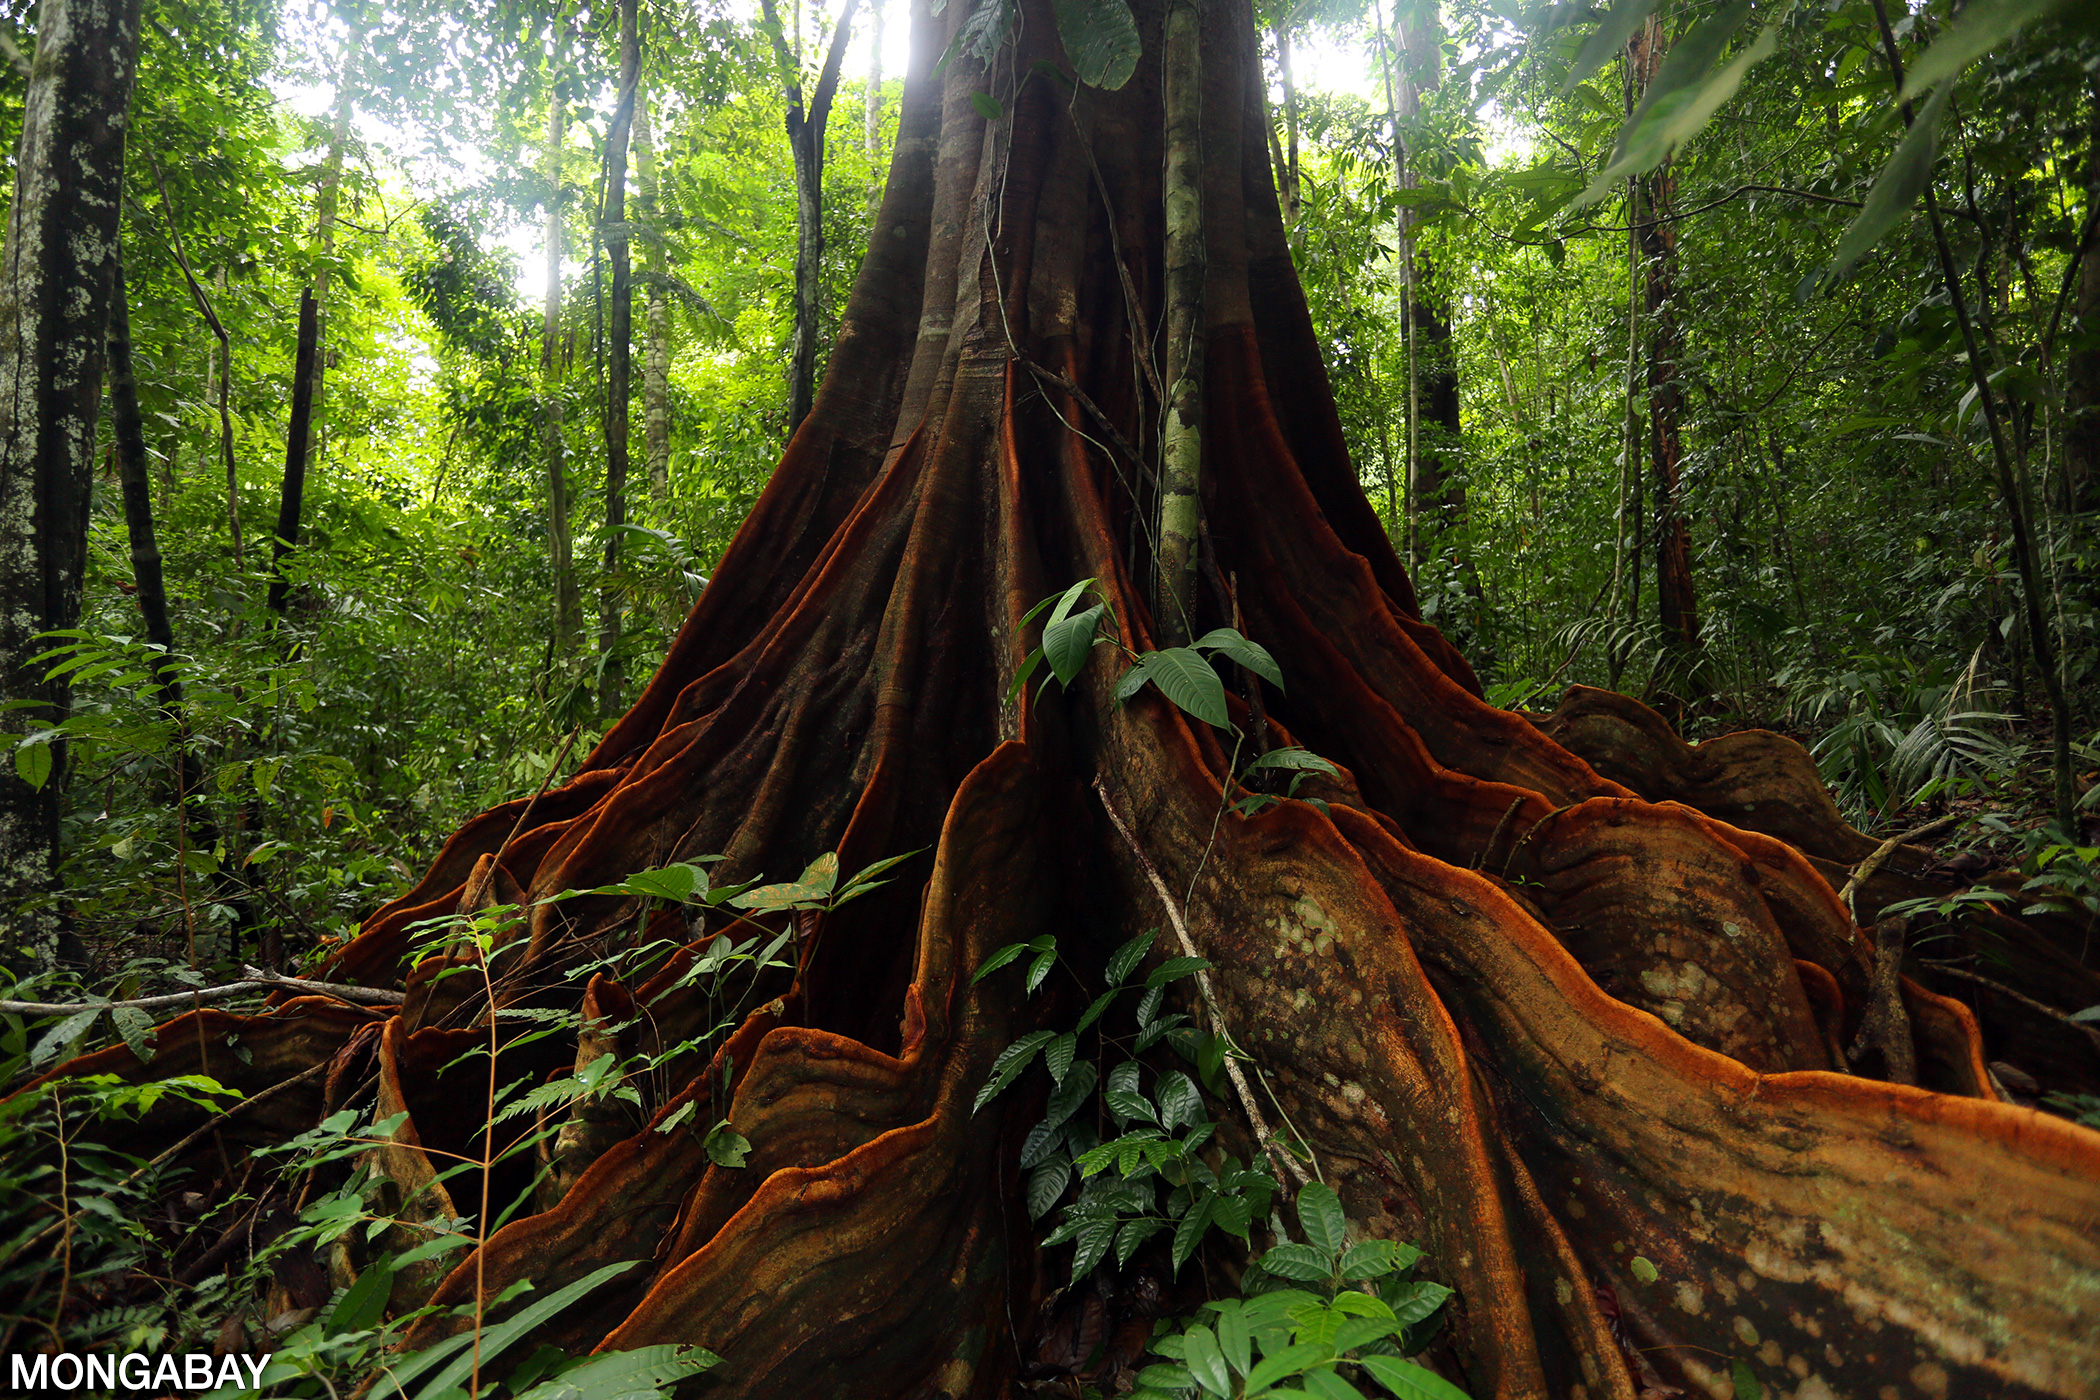 The Ground Layer Of The Rainforest